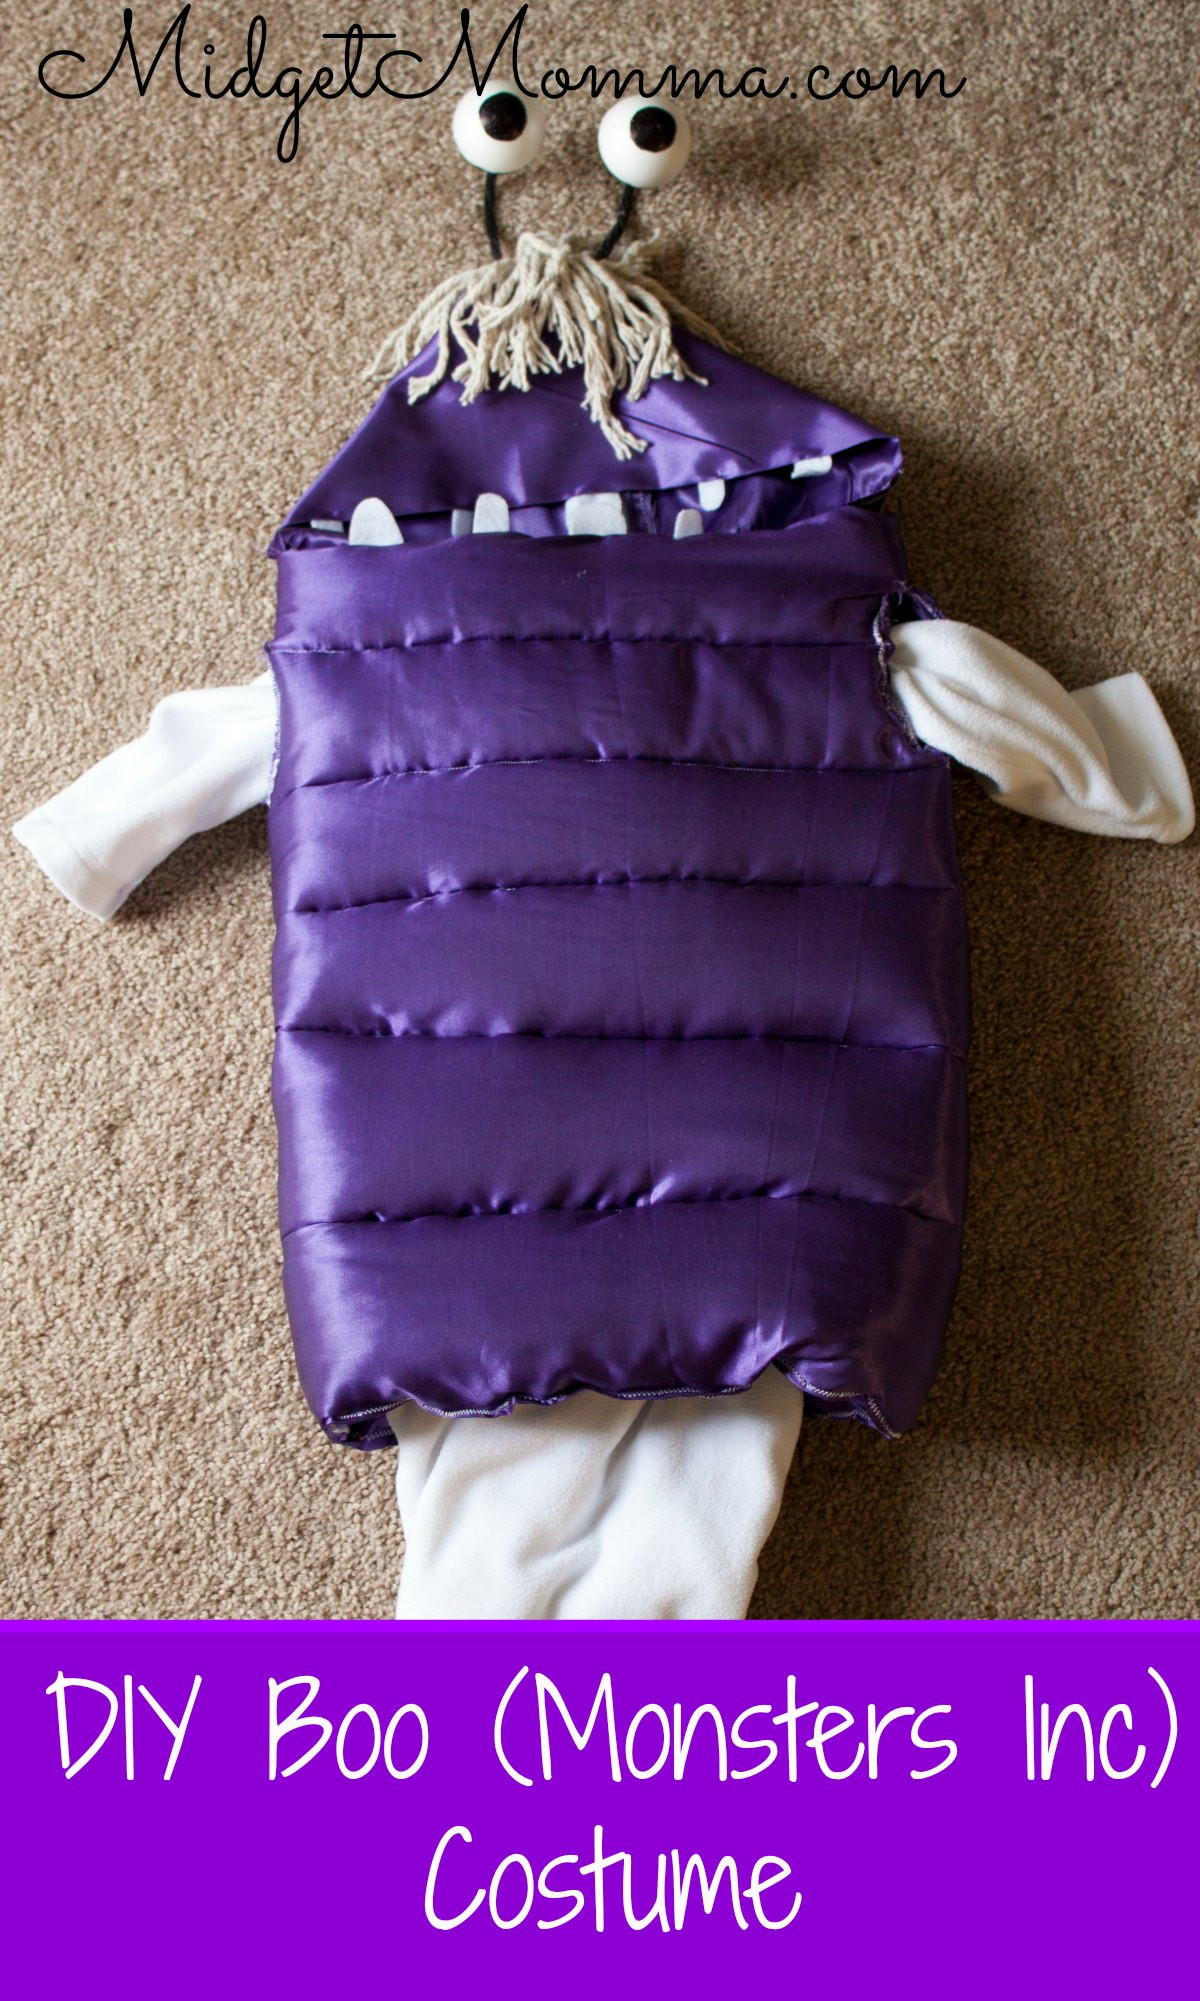 Best ideas about DIY Monsters Inc Costume . Save or Pin DIY Boo From Monster Inc Costume Now.